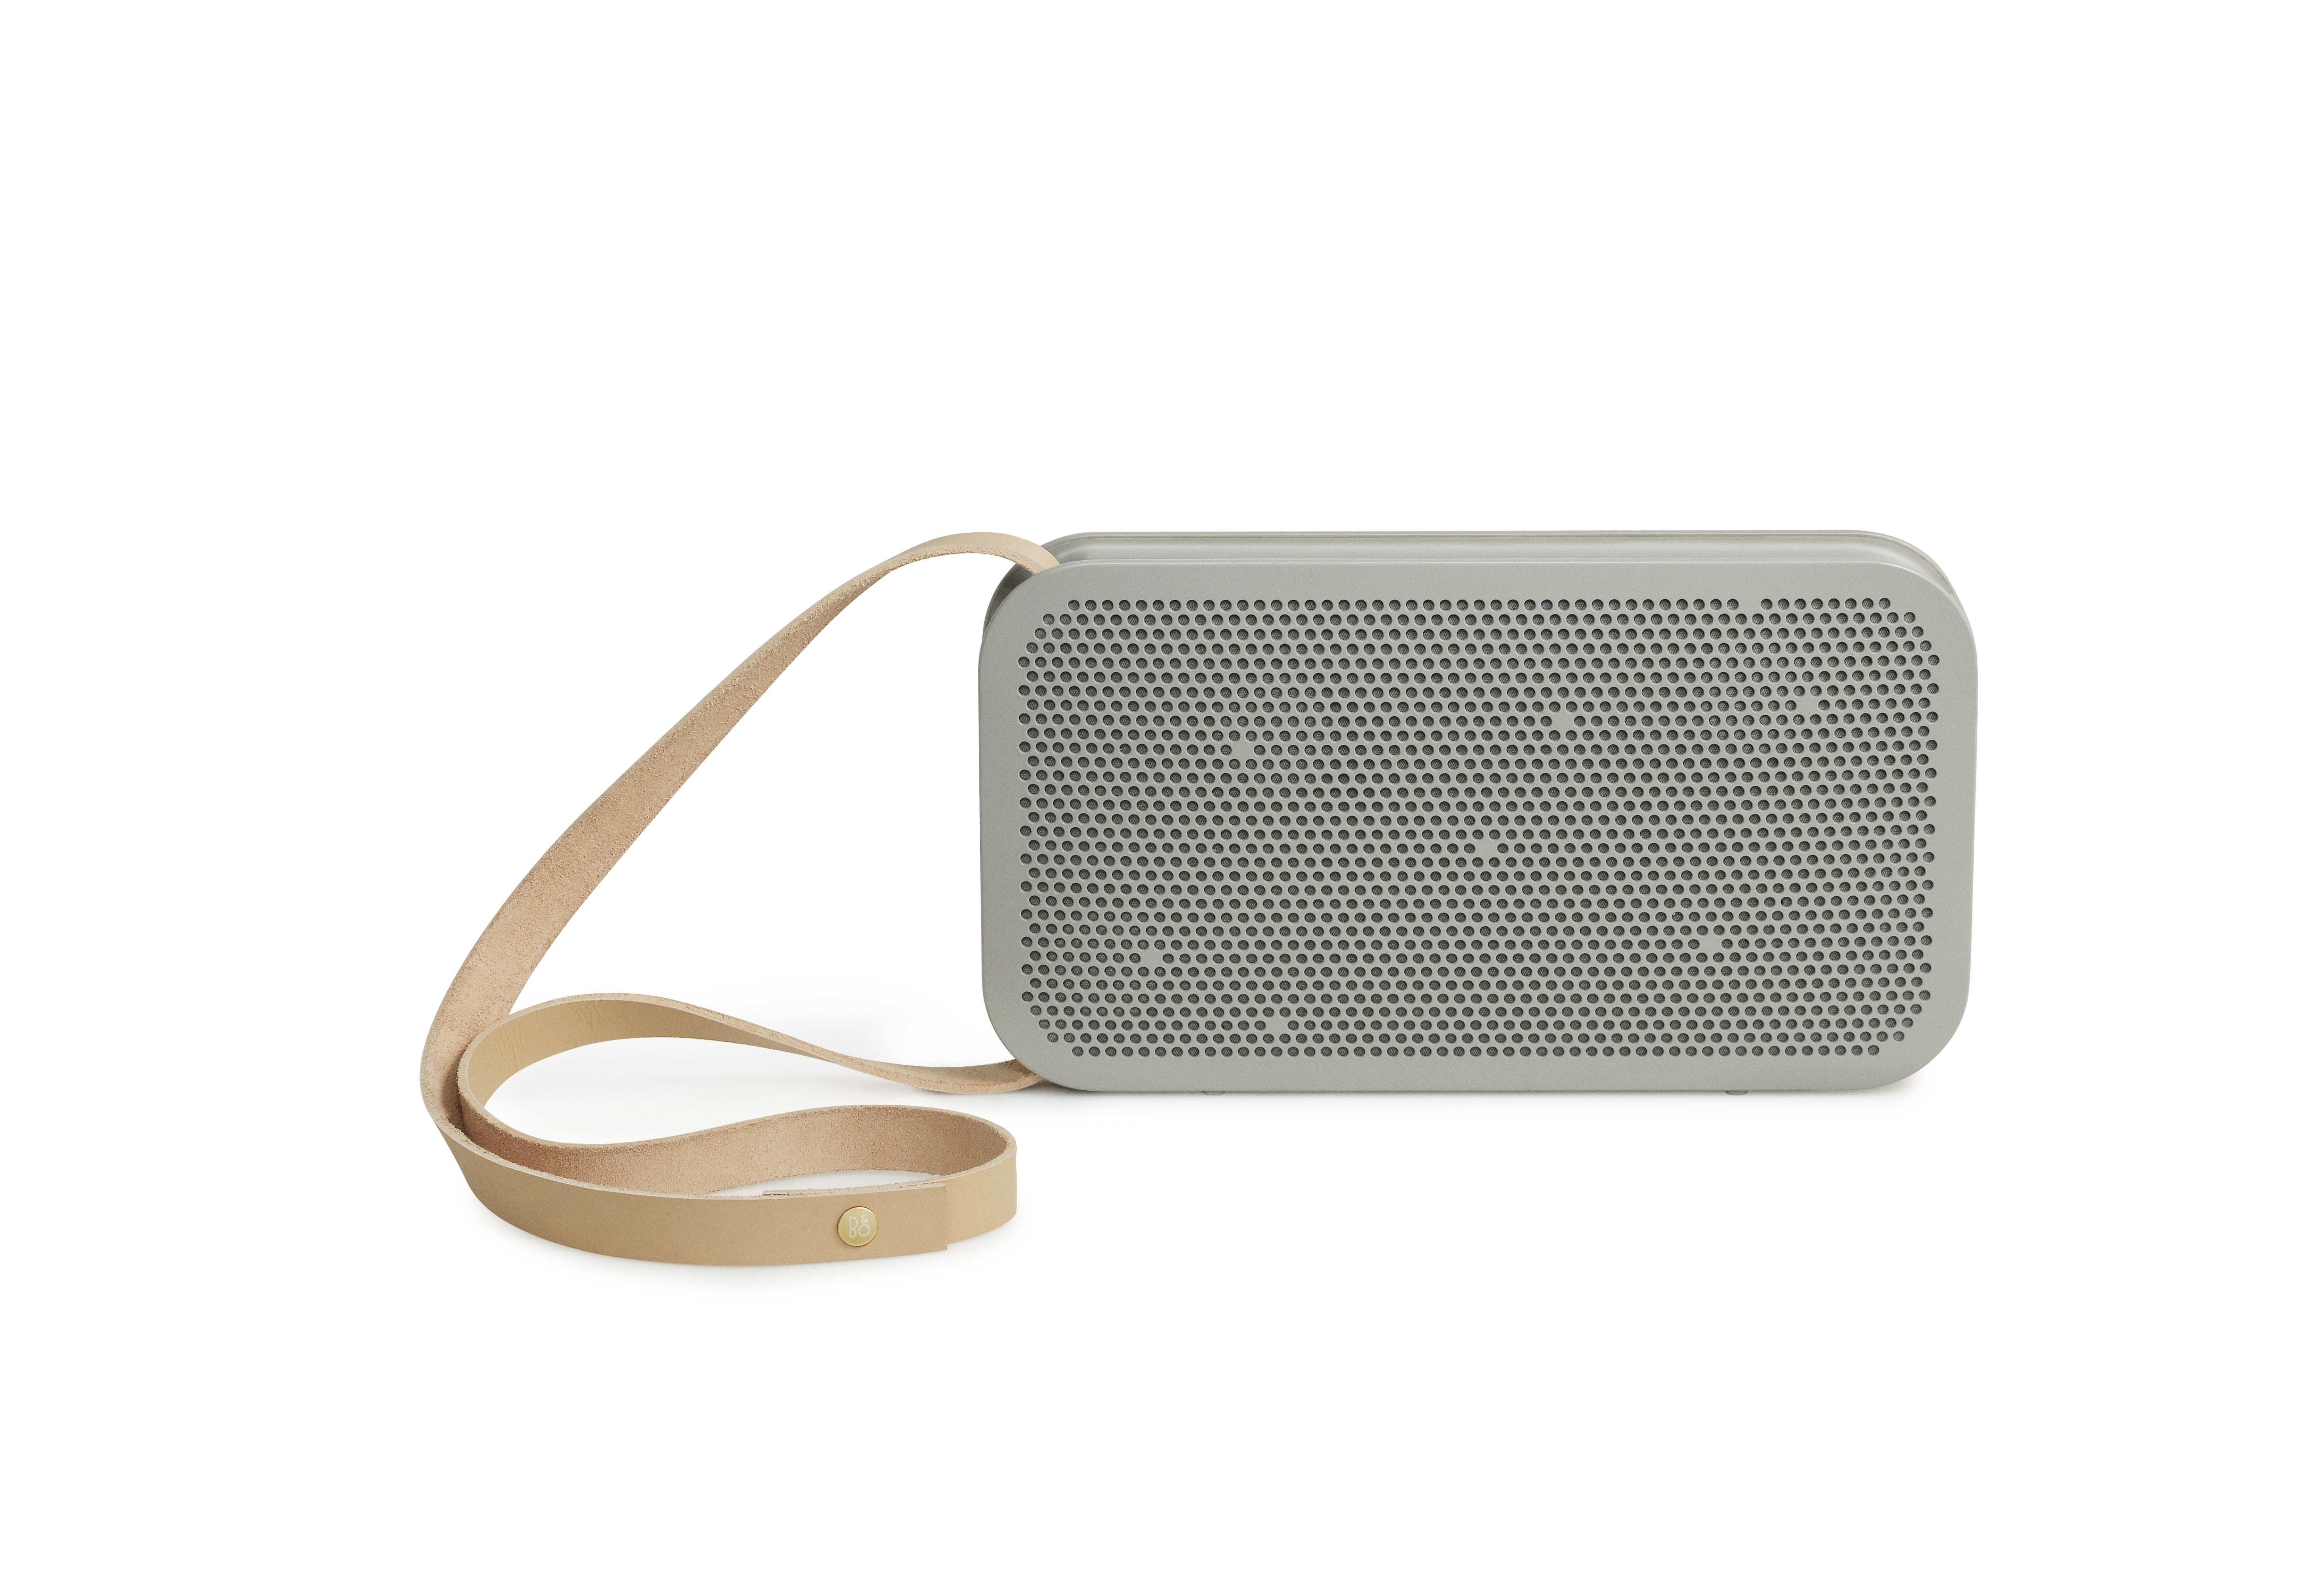 beoplay-a2-long-strap_16248900207_o